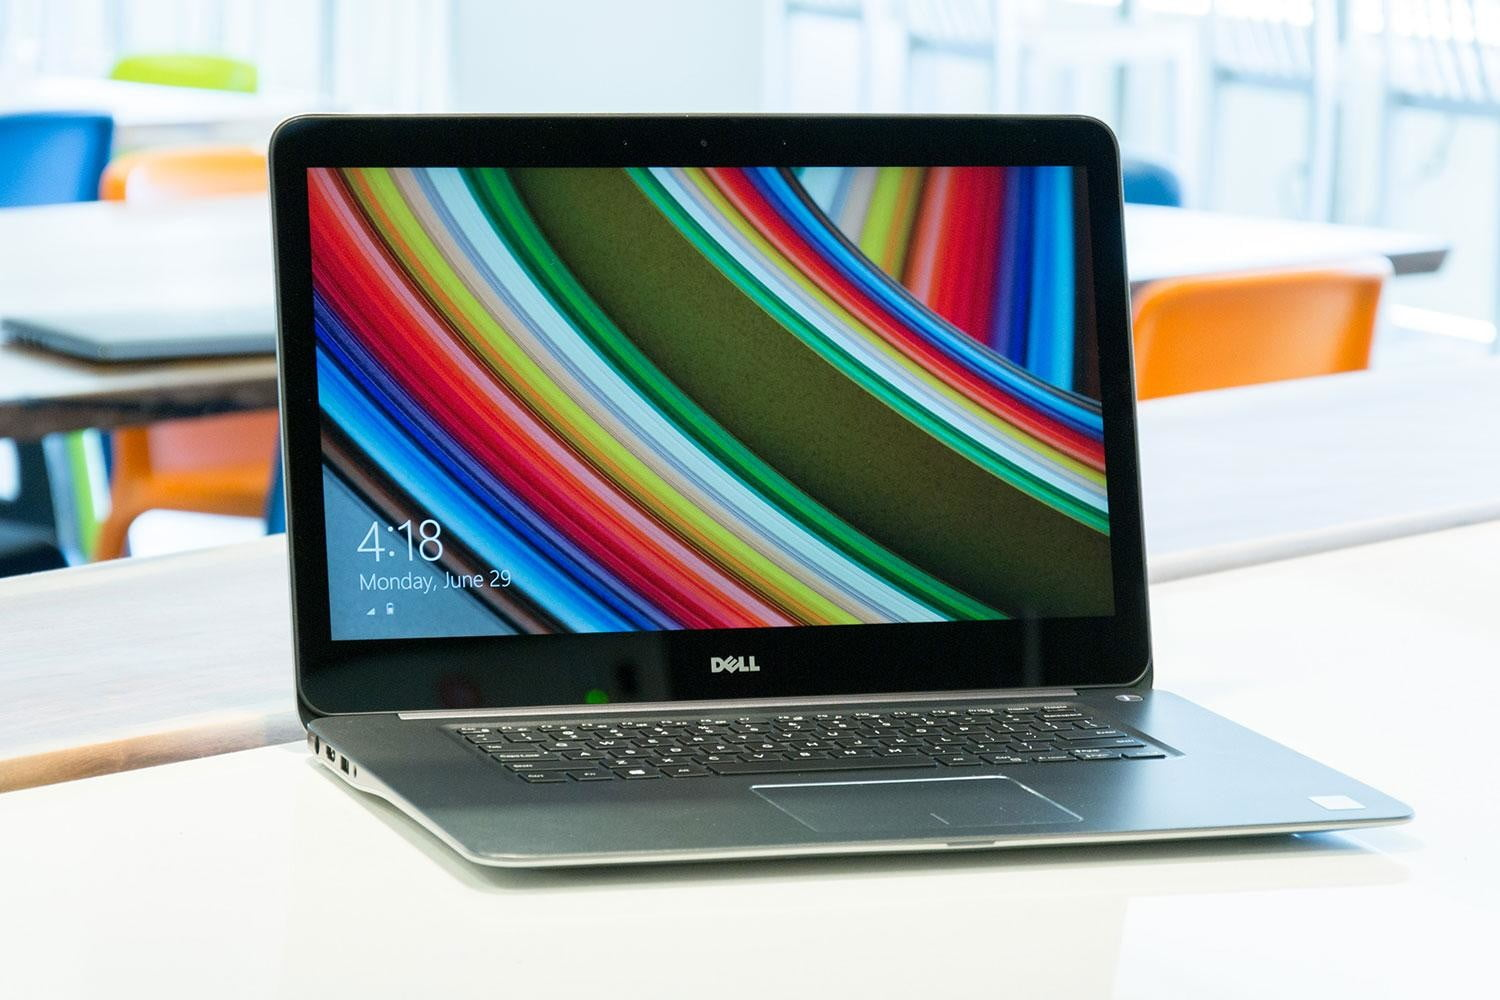 Dell Inspiron 15 7000 with 4K Display Review | Digital Trends